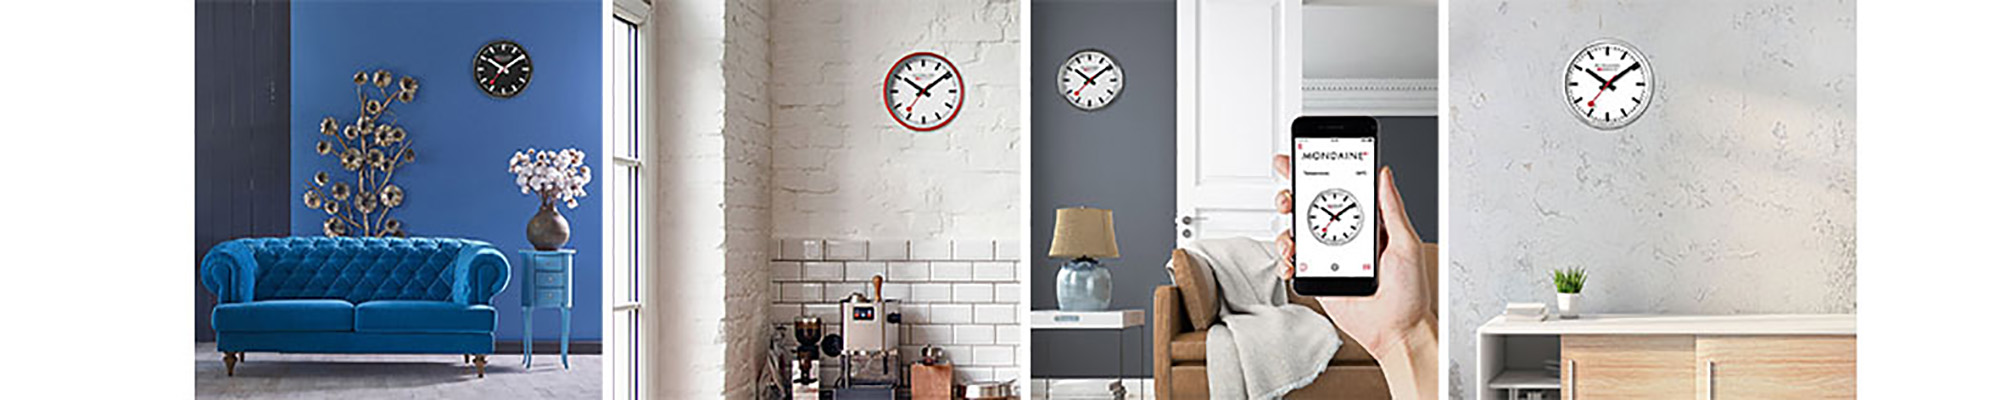 Iconic Mondaine Wall Clocks